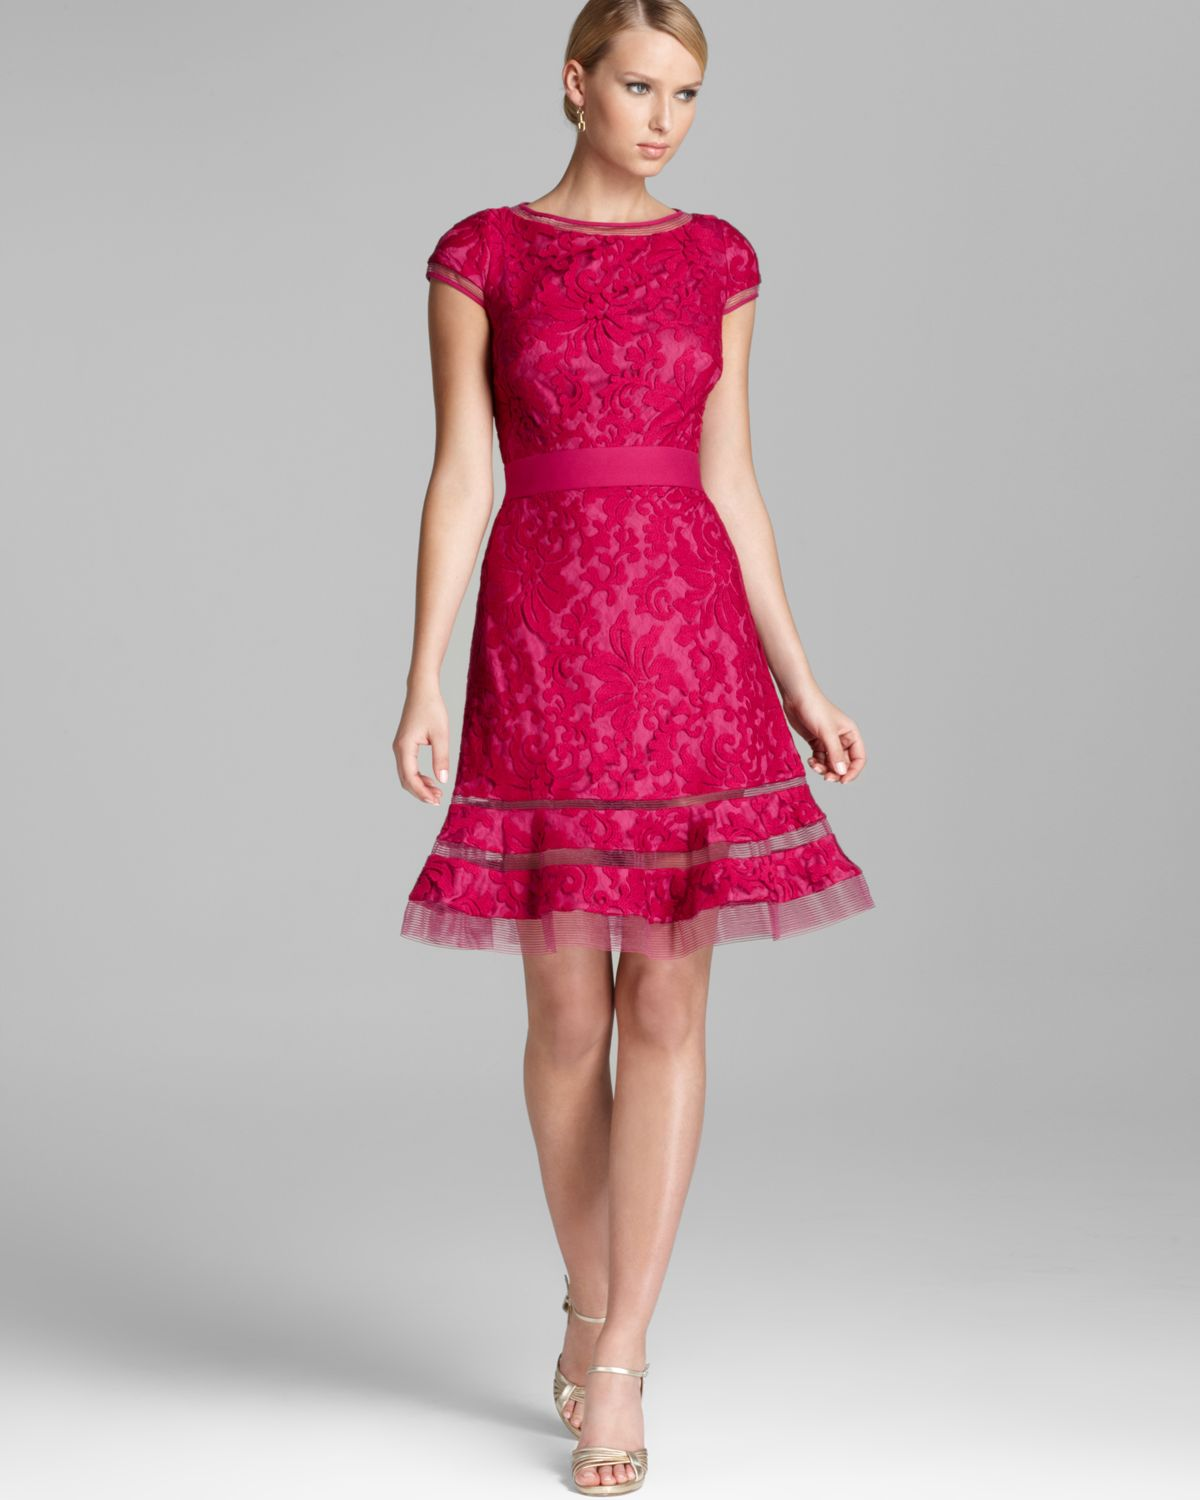 Pink Lace Dresses - Dress Xy